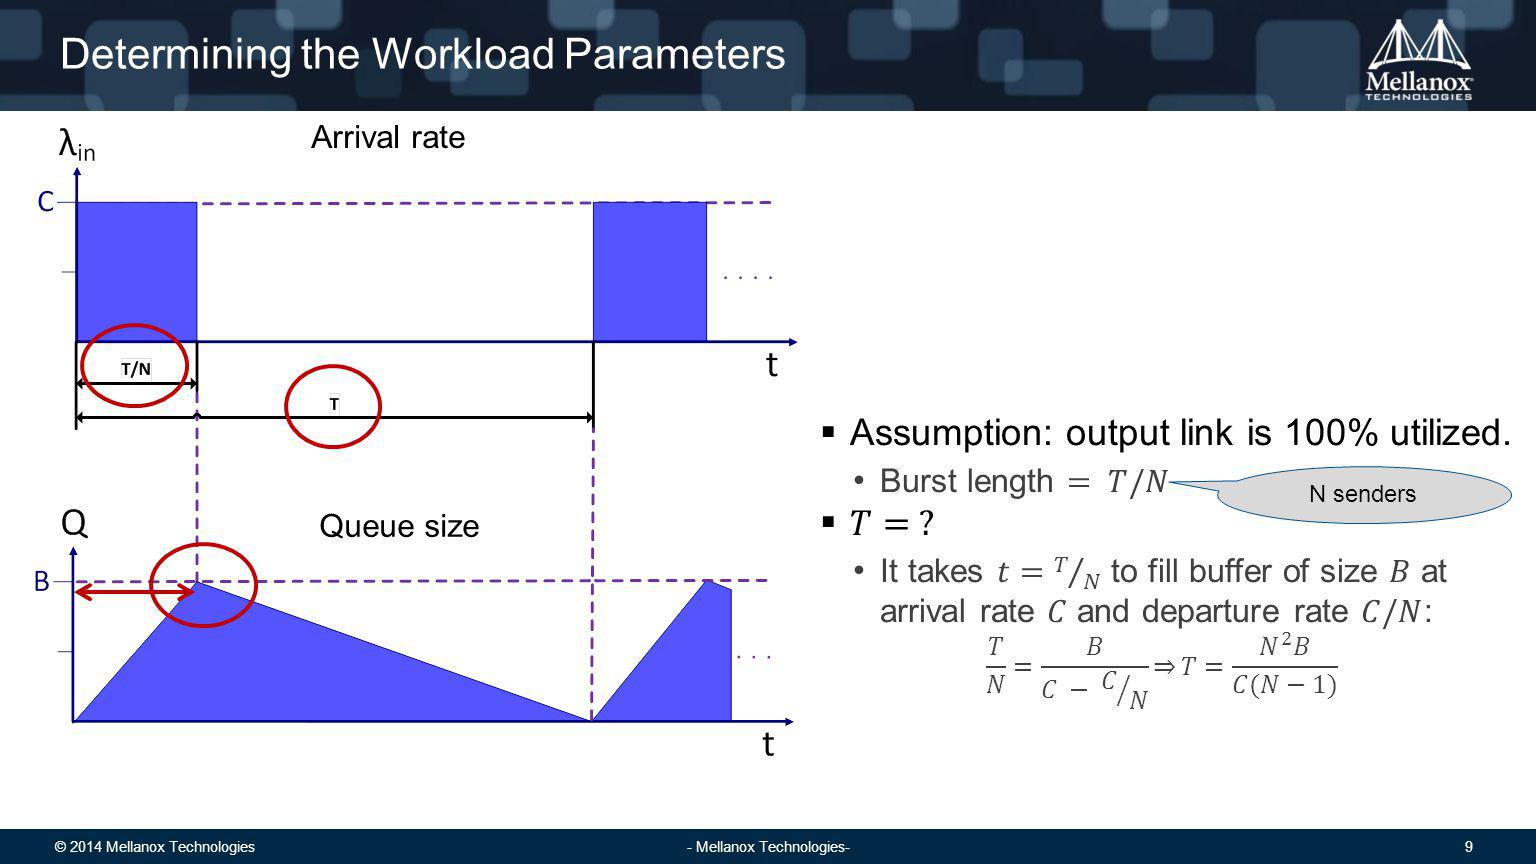 © 2014 Mellanox Technologies 9 - Mellanox Technologies- Determining the Workload Parameters Arrival rate Queue size N senders